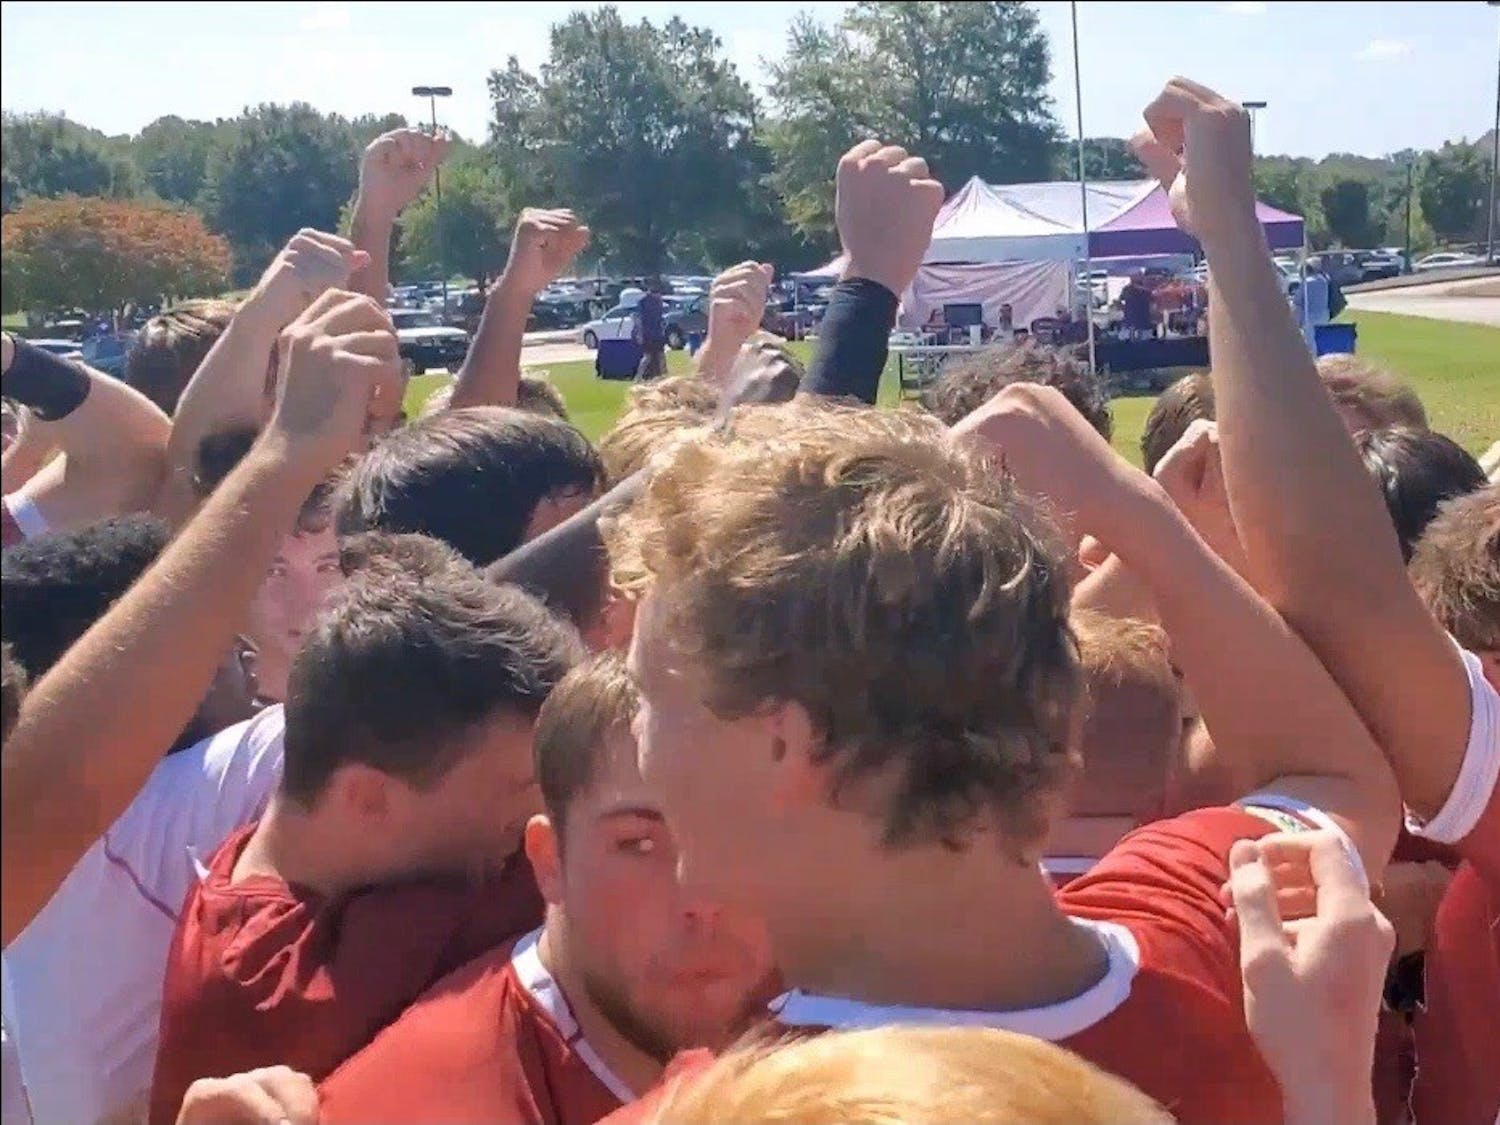 Members of the Gamecock club rugby team stand with their fists in the air.